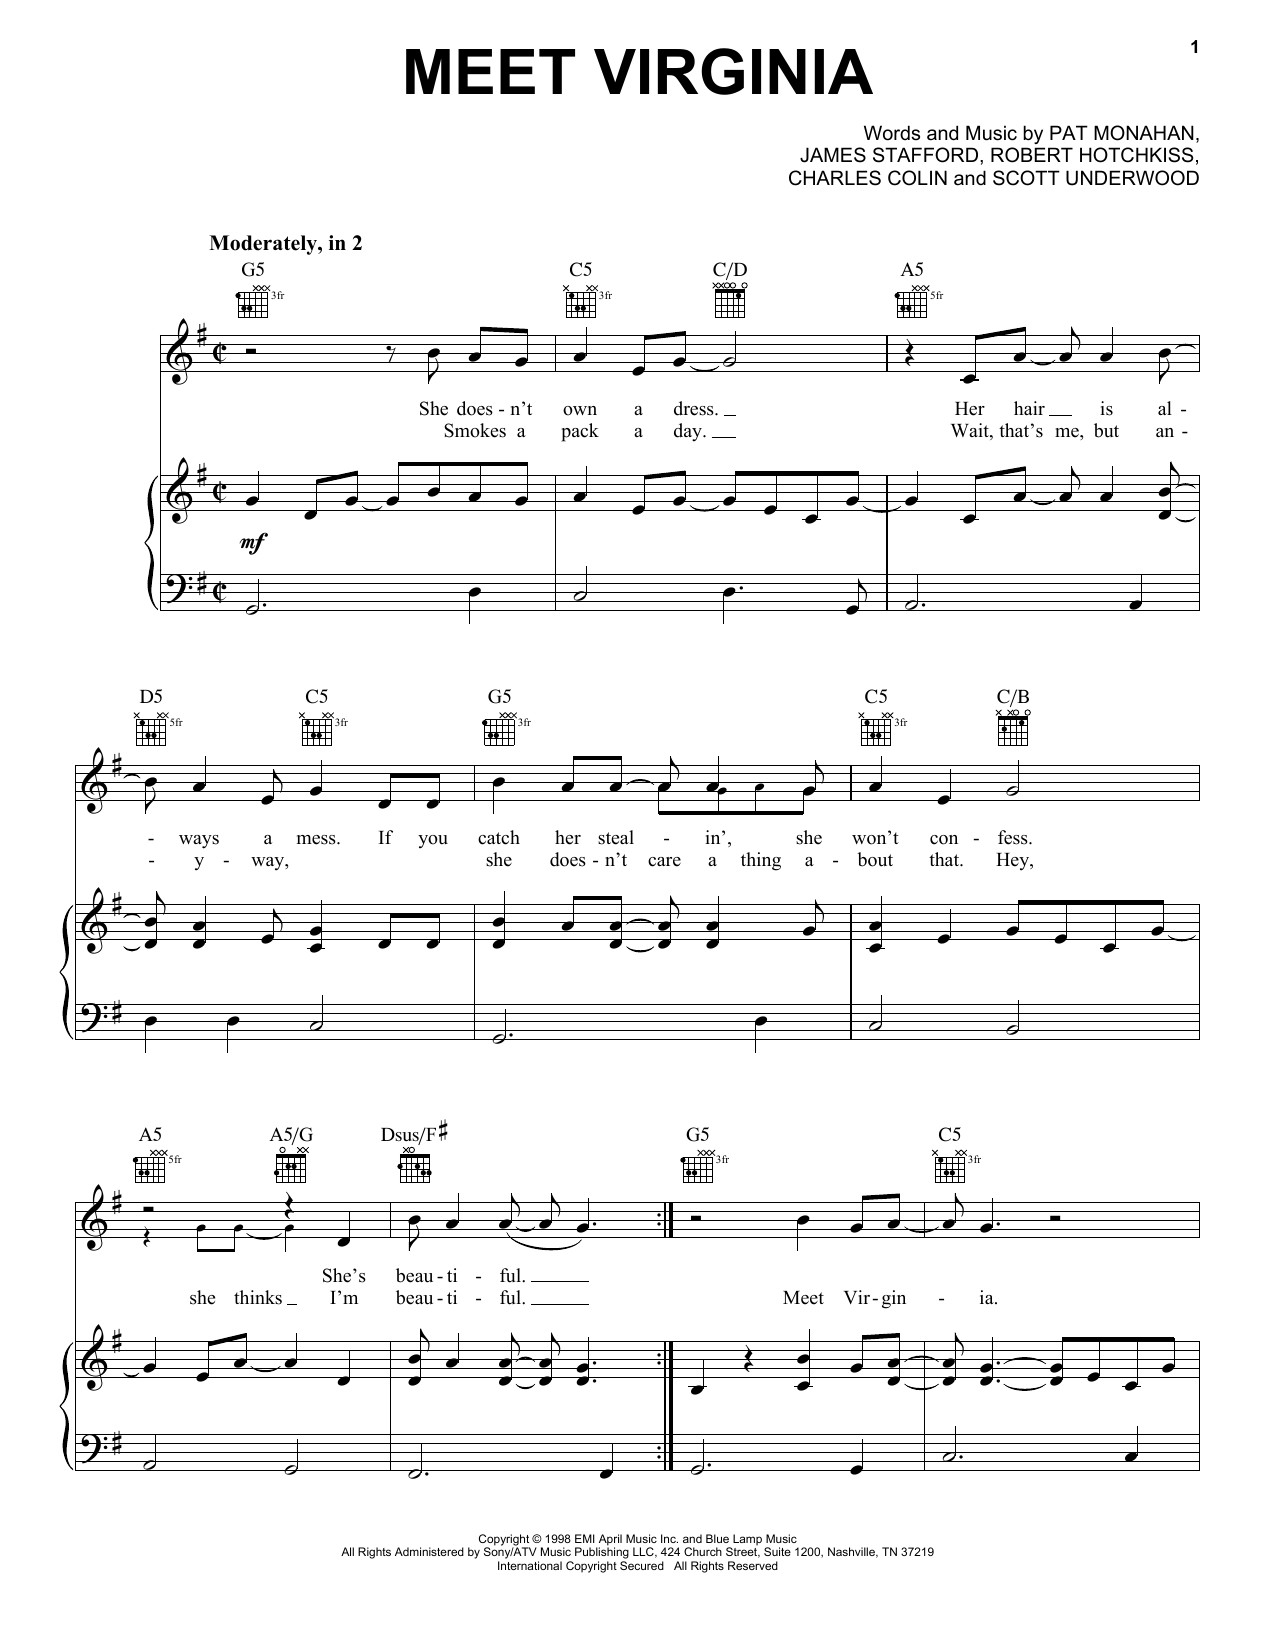 Train Meet Virginia sheet music notes and chords. Download Printable PDF.